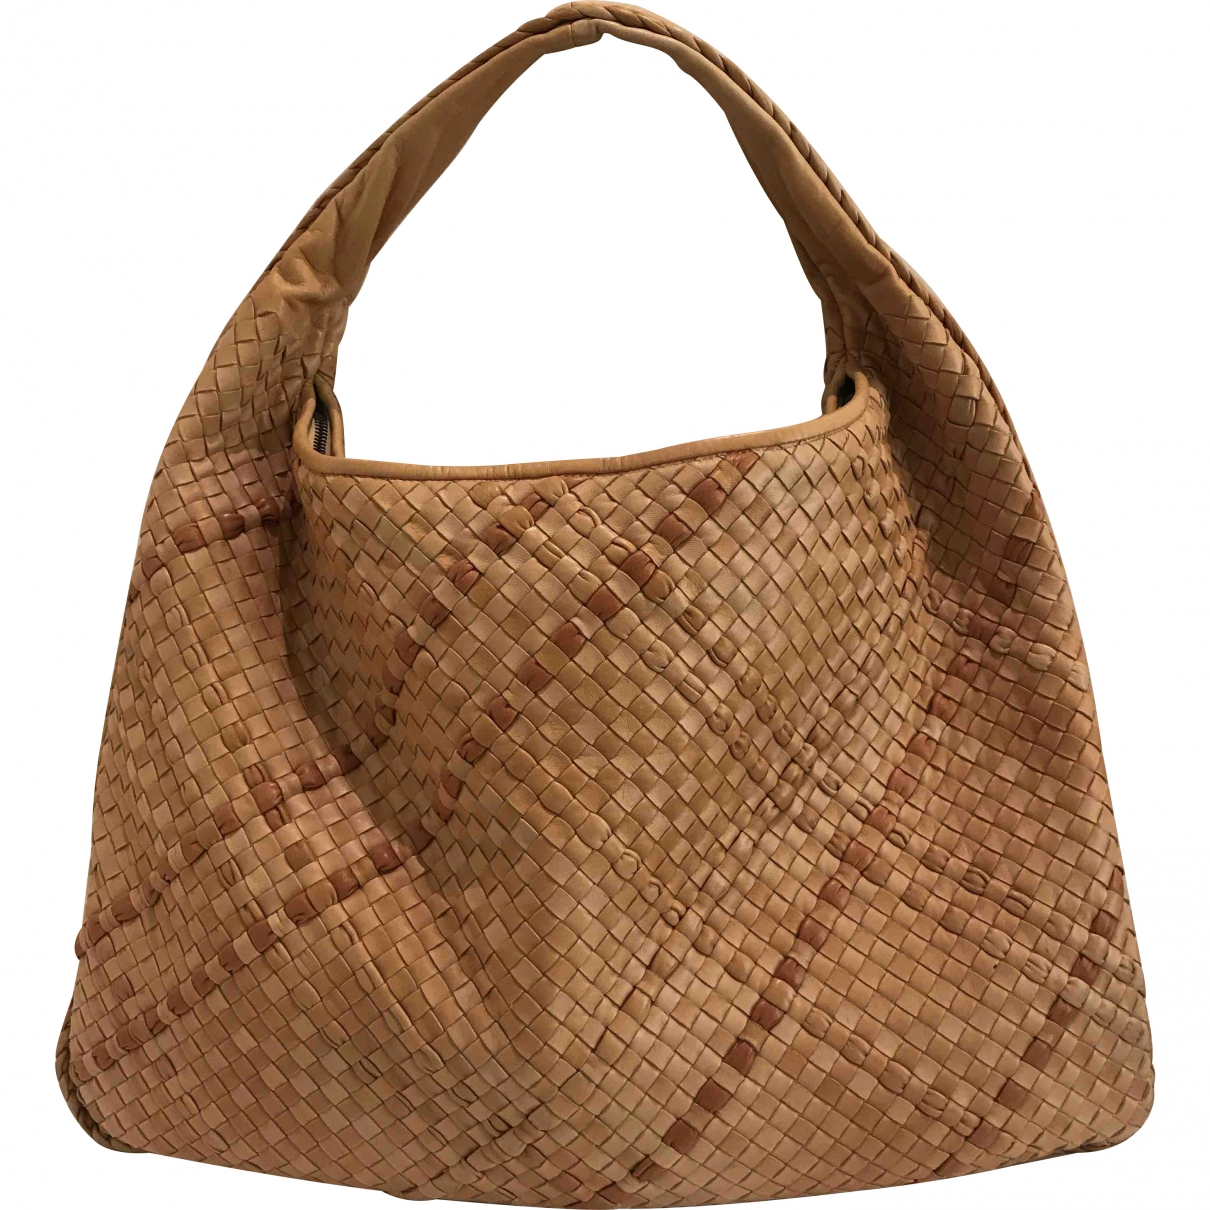 Bottega Veneta Veneta Beige Leather handbag for Women \N